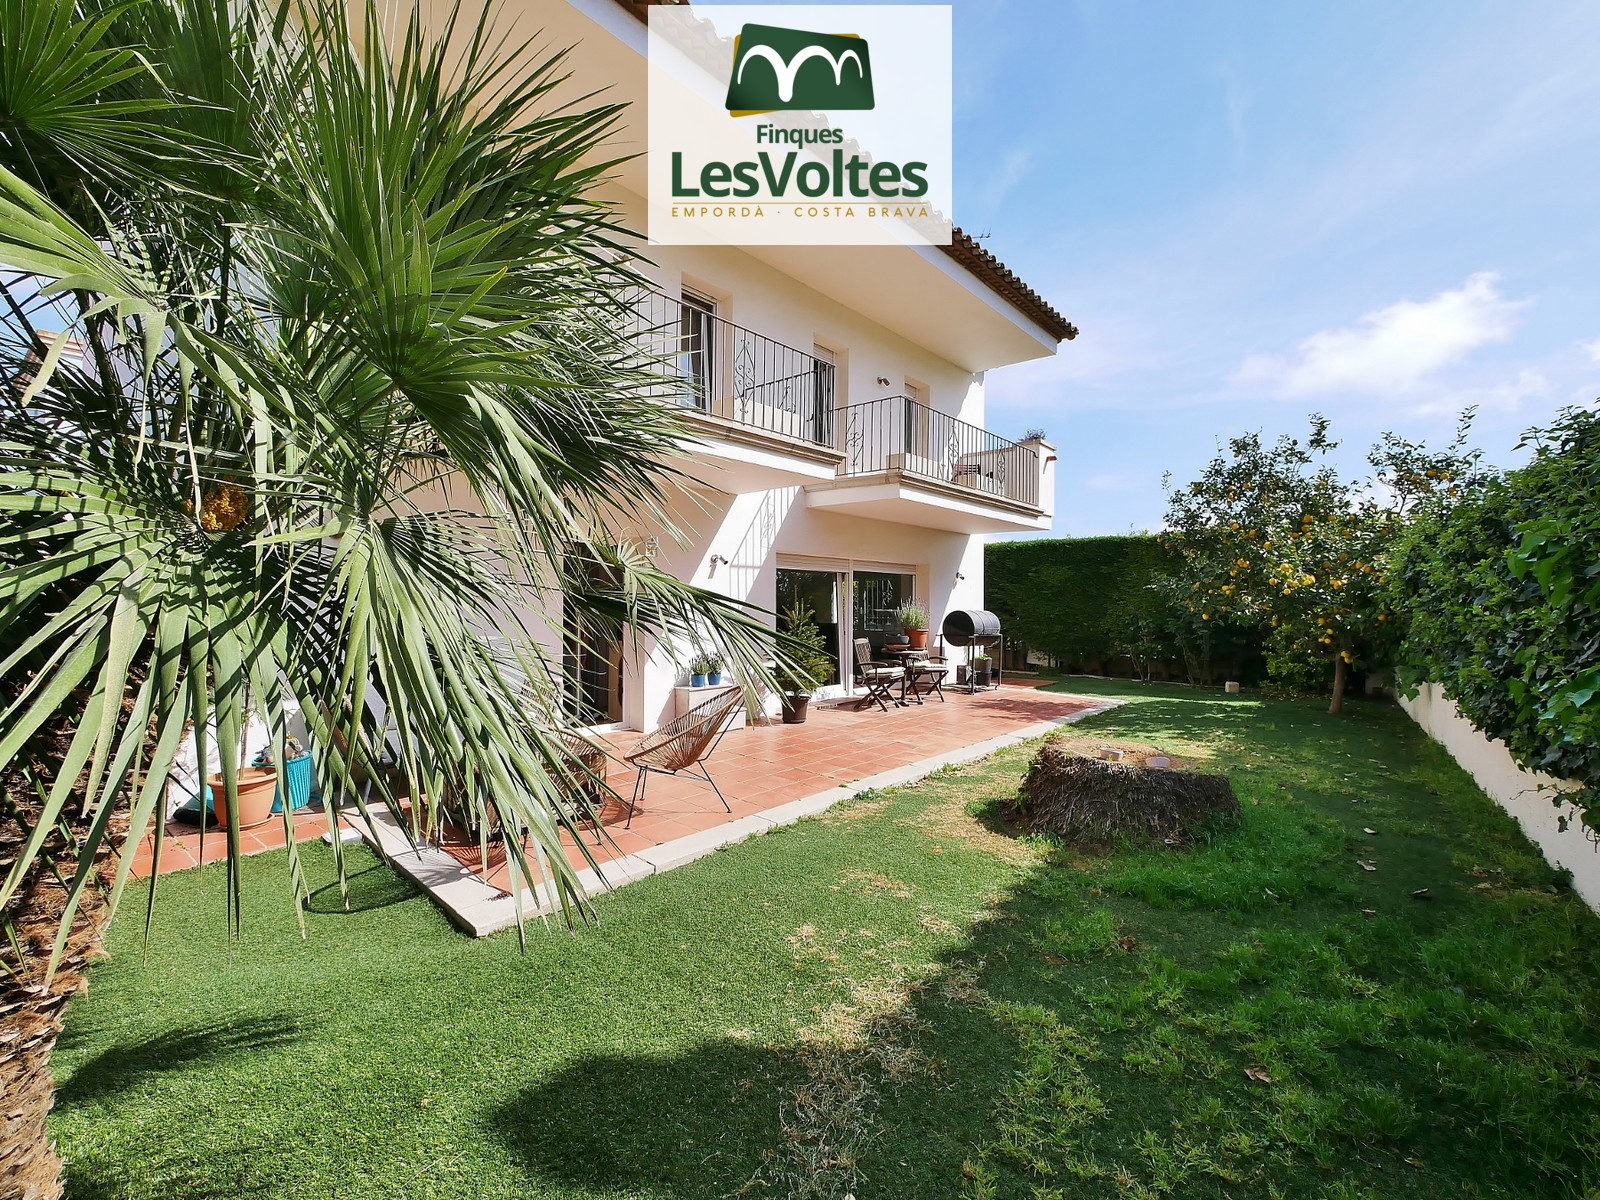 MAGNICAL SINGLE-FAMILY HOUSE WITH MOUNTAIN VIEWS AND SURROUNDED BY NATURE, VERY CLOSE TO THE CENTER OF PALAFRUGELL.